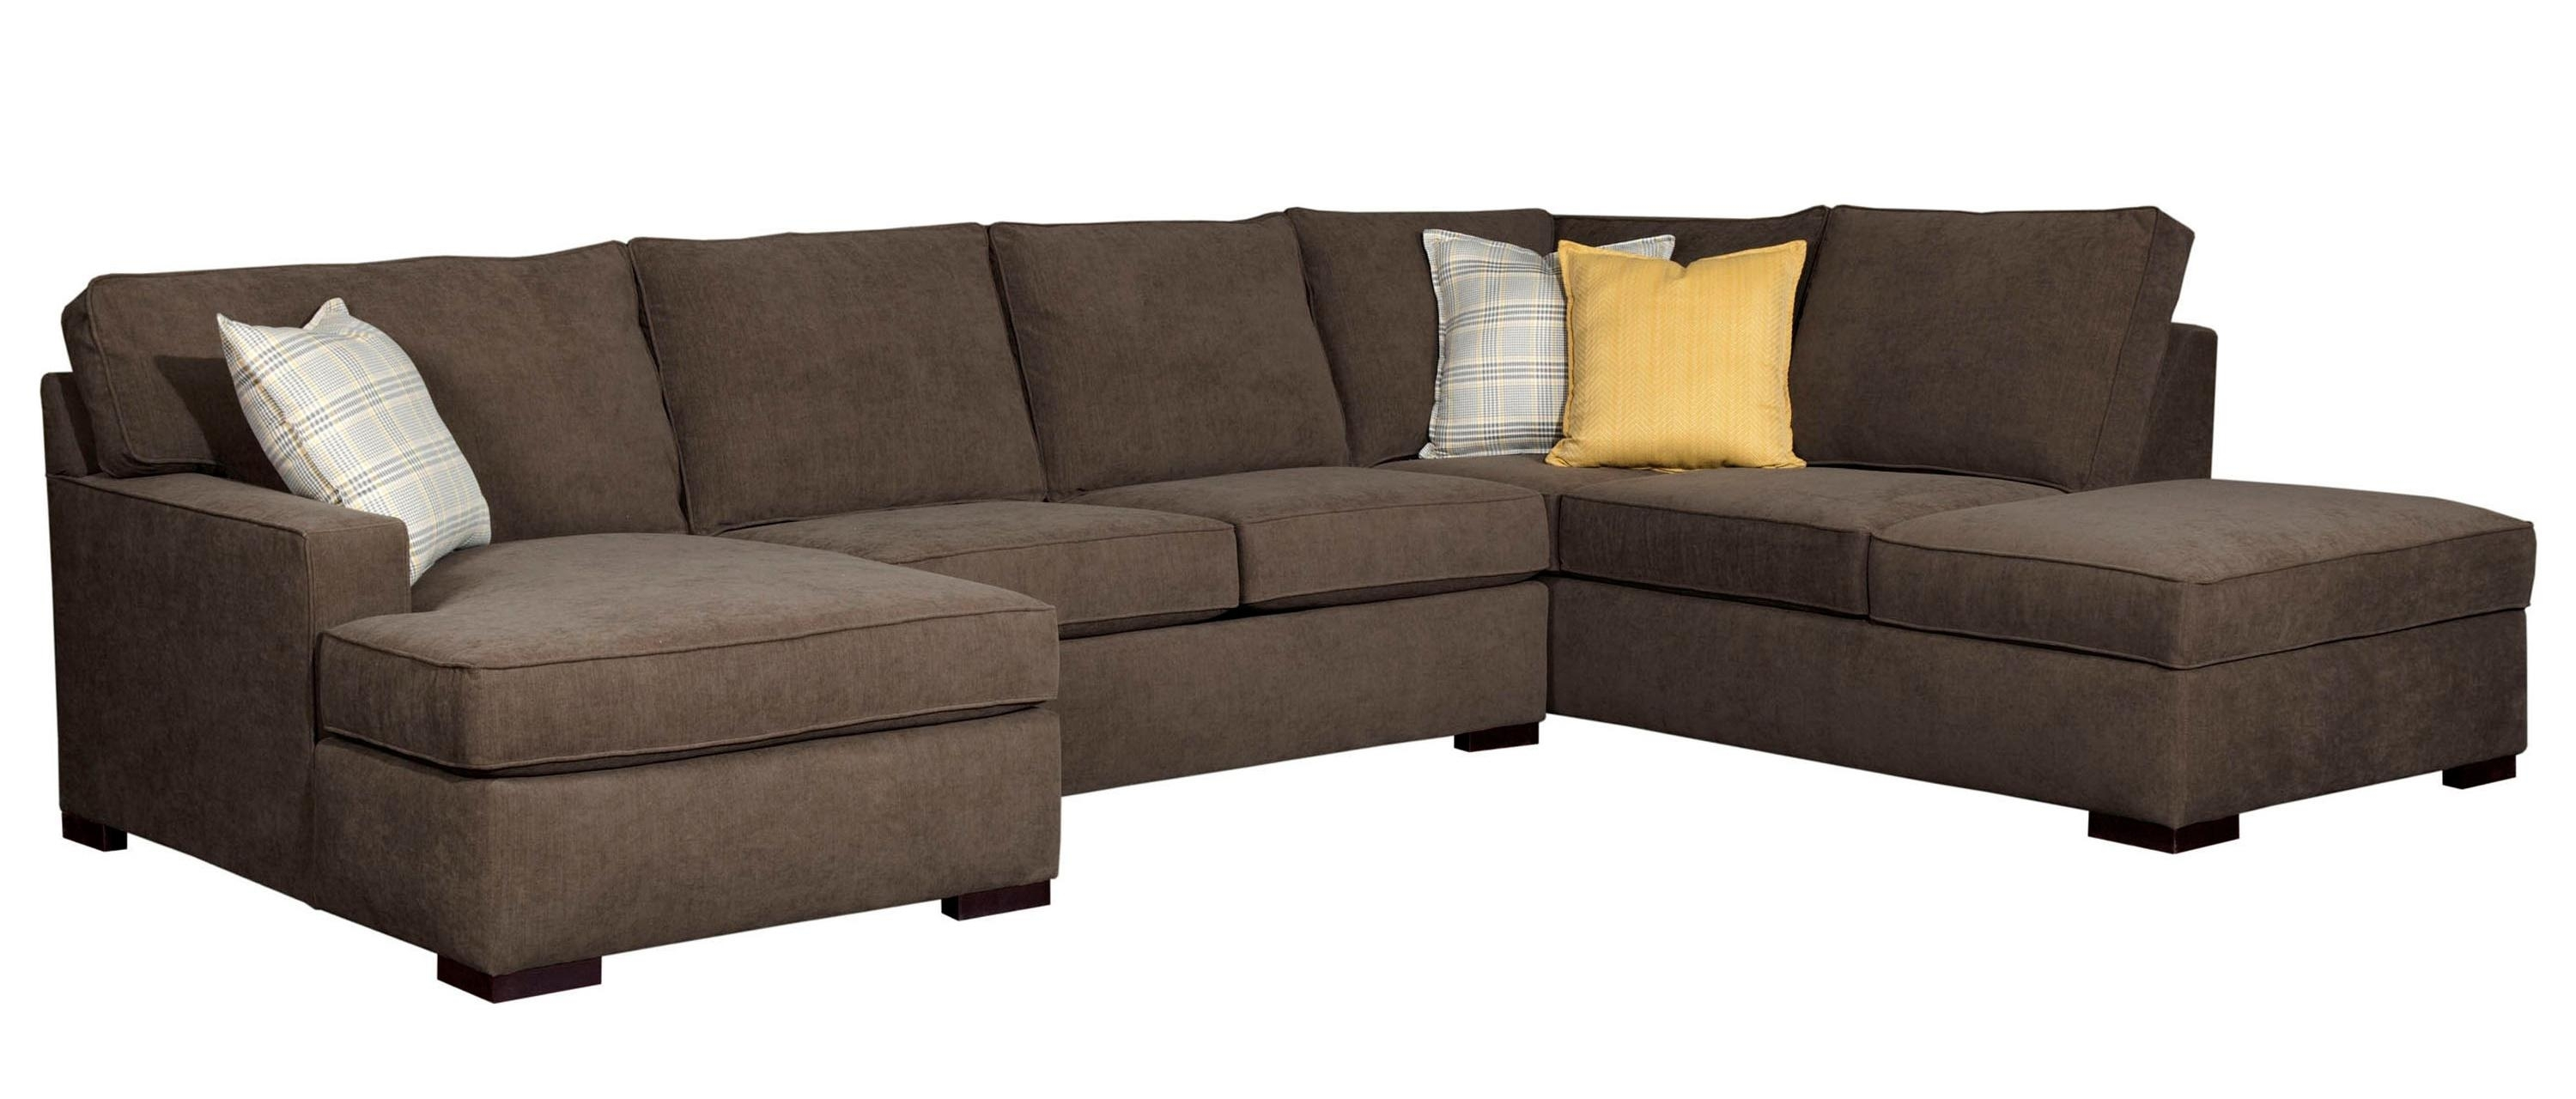 Broyhill Furniture Raphael Contemporary Sectional Sofa With Laf In Sam Levitz Sectional Sofas (Image 3 of 10)